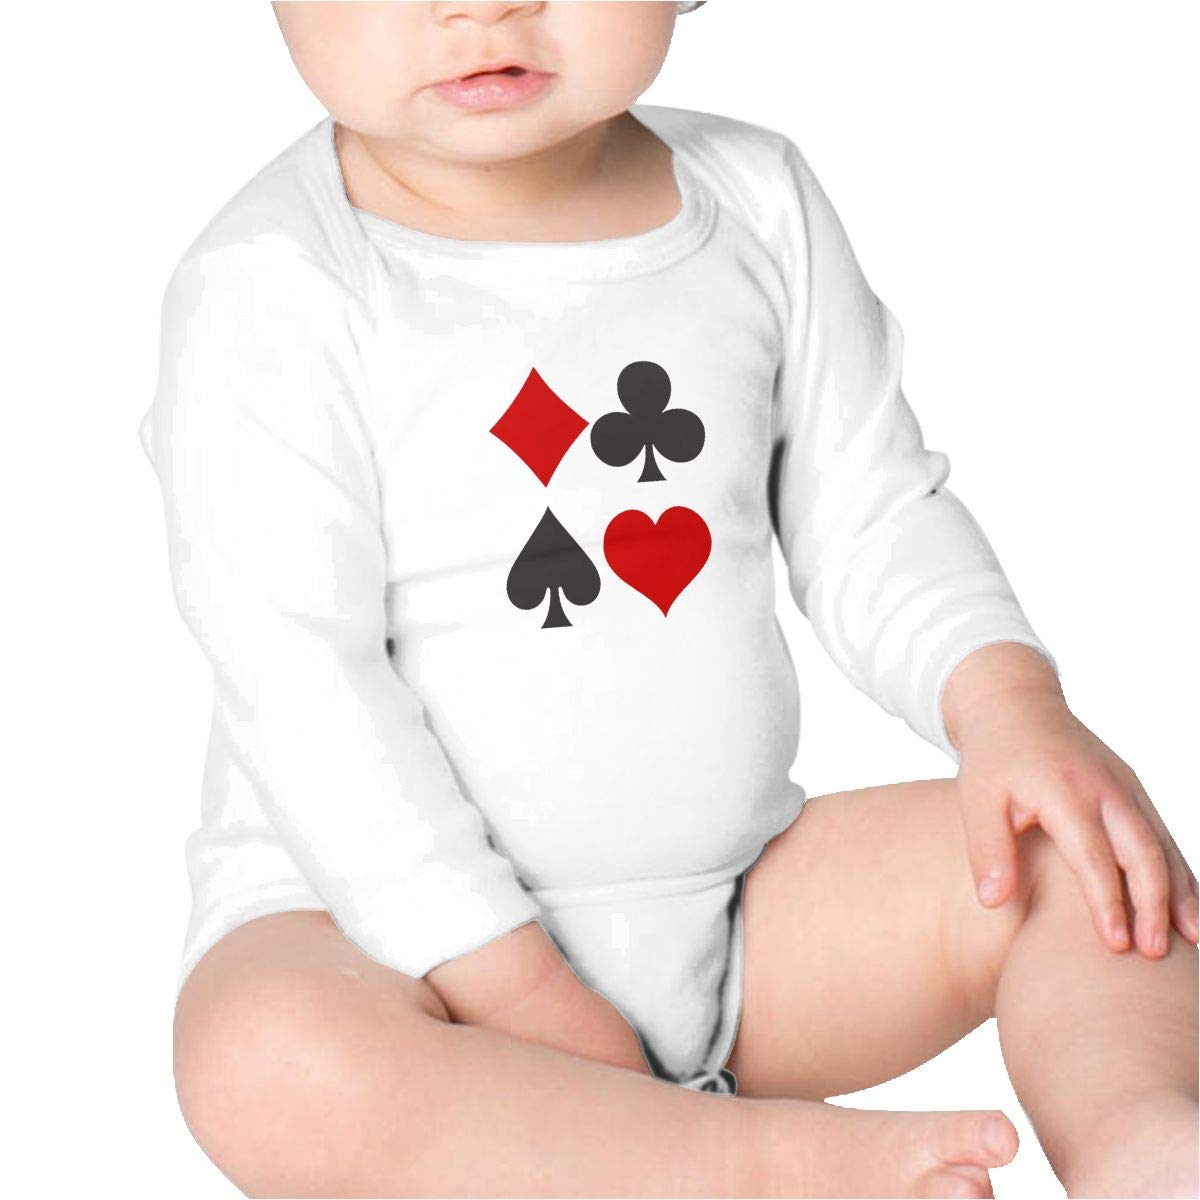 Pikaqiuleilei Playing Card Symbols Baby Cotton,Long Sleeve Baby Romper